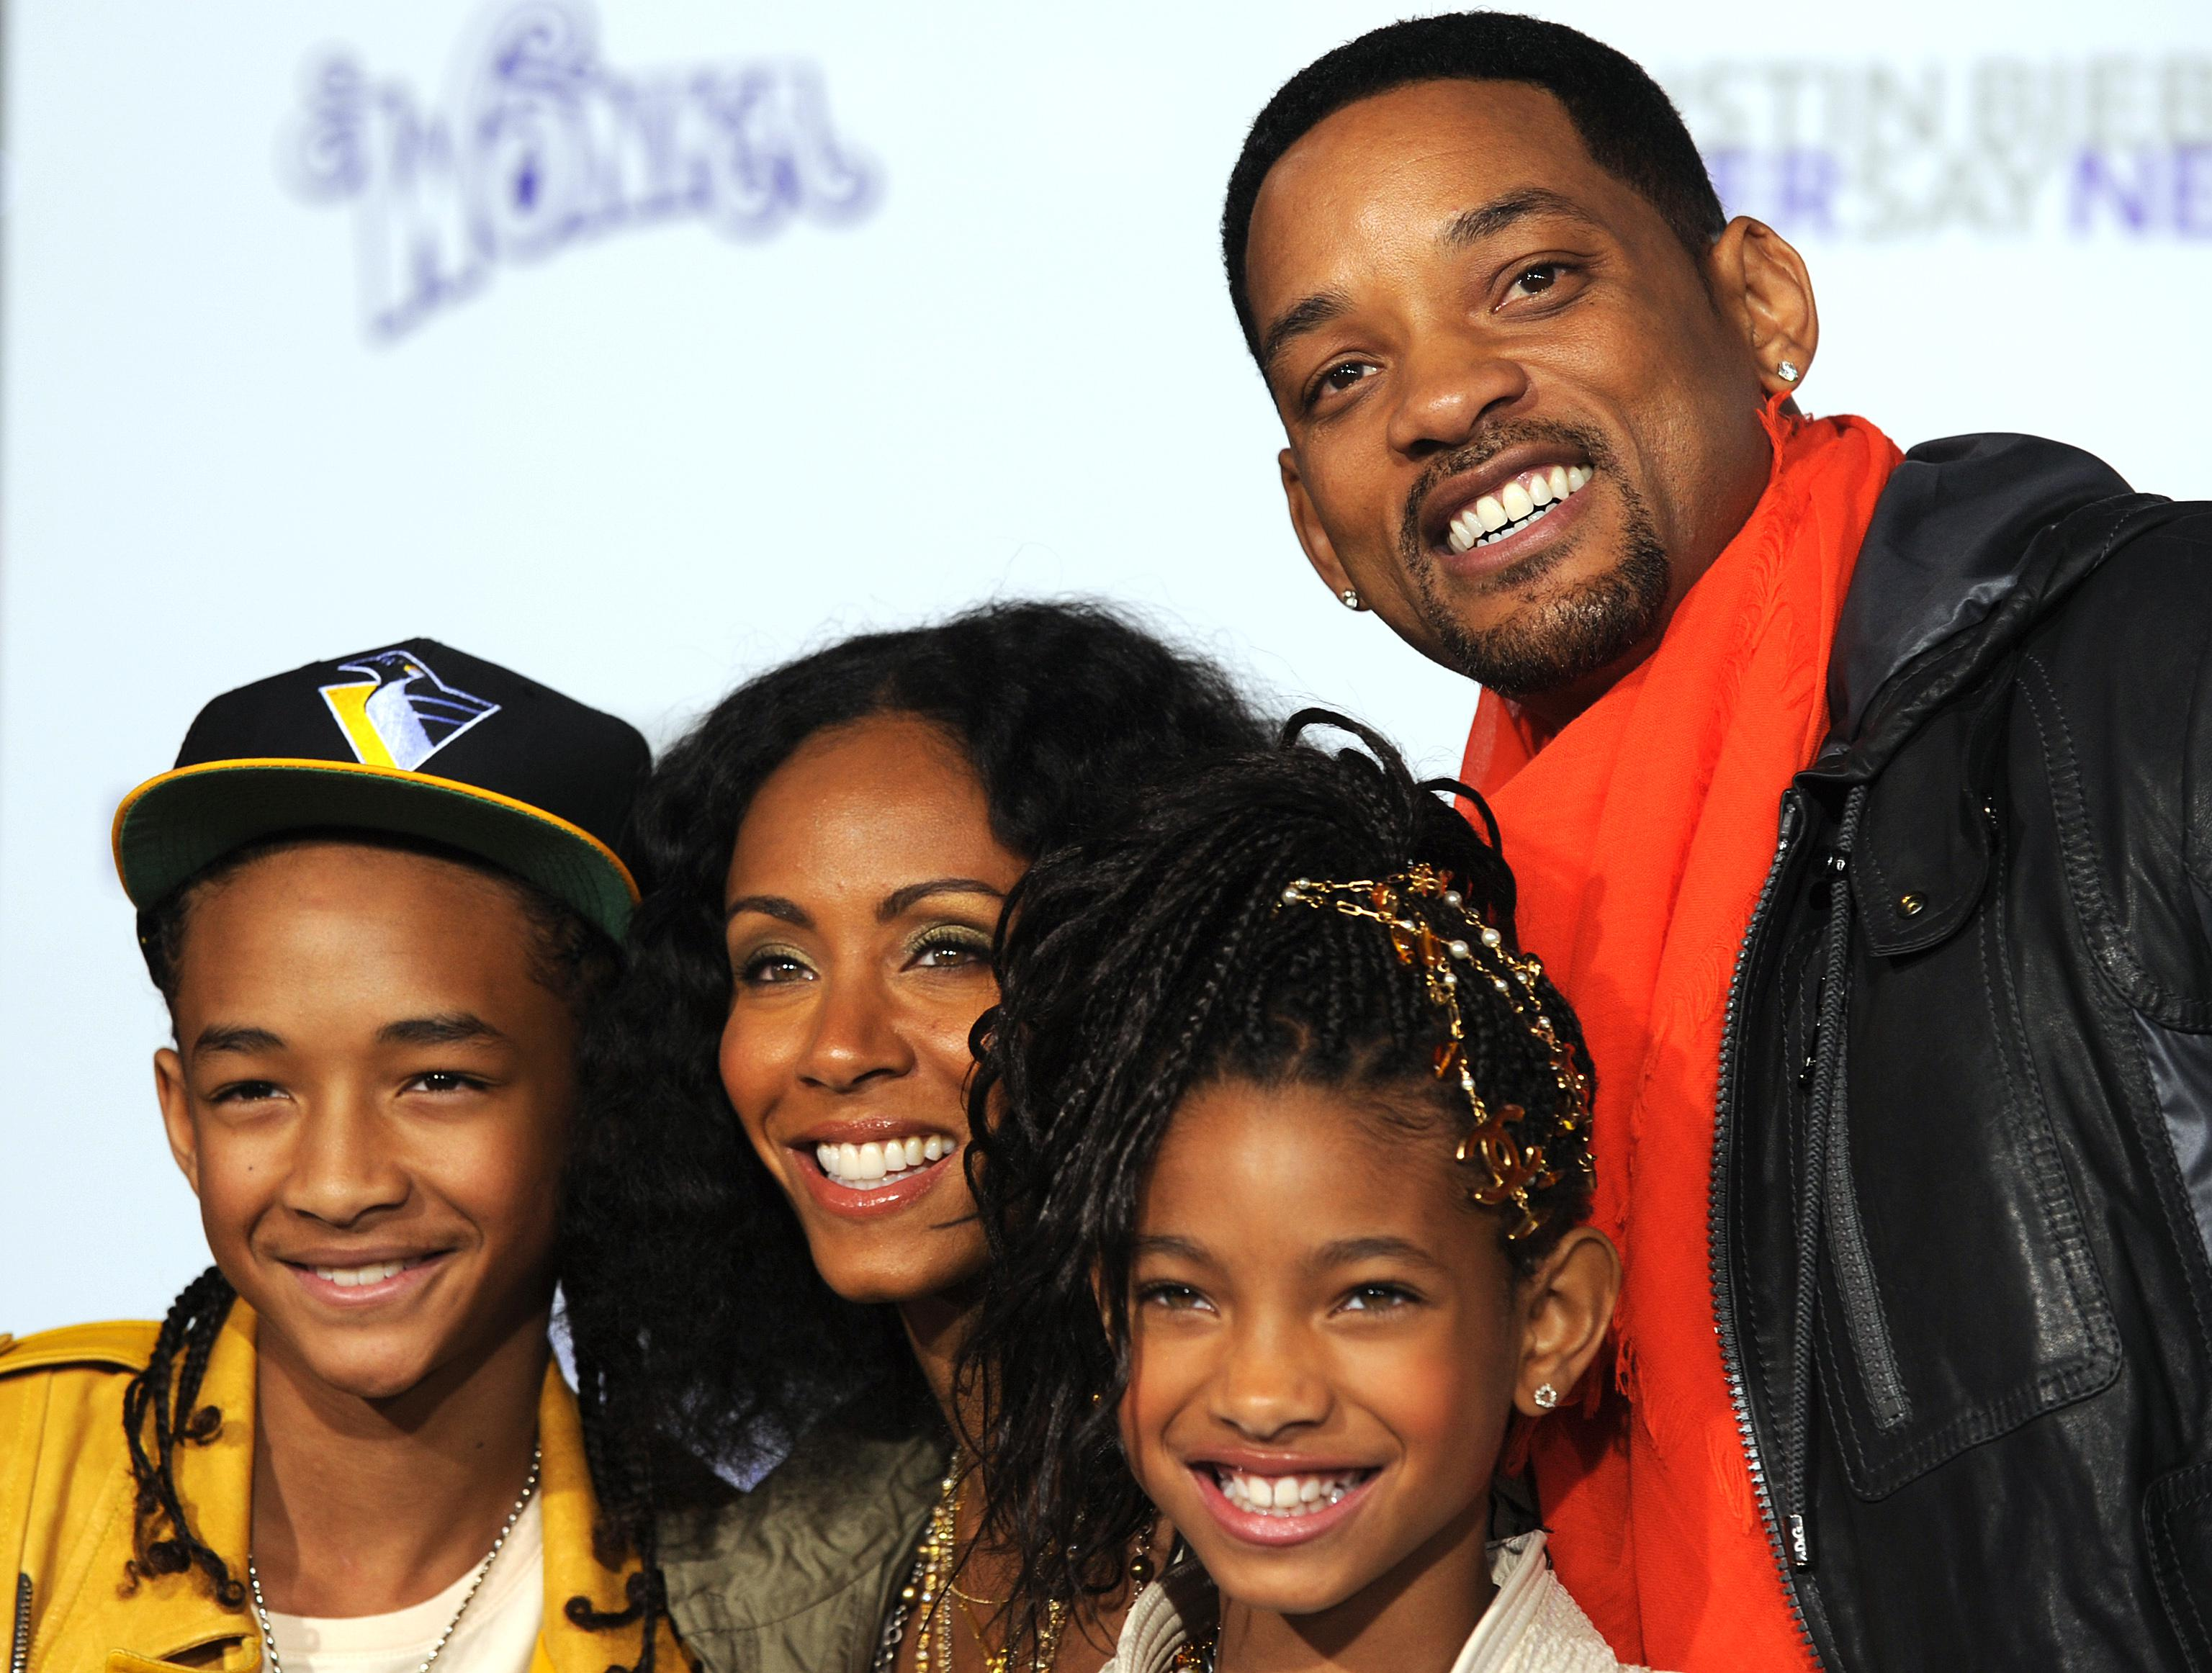 Actors Jaden Smith, Jada Pinkett Smith,